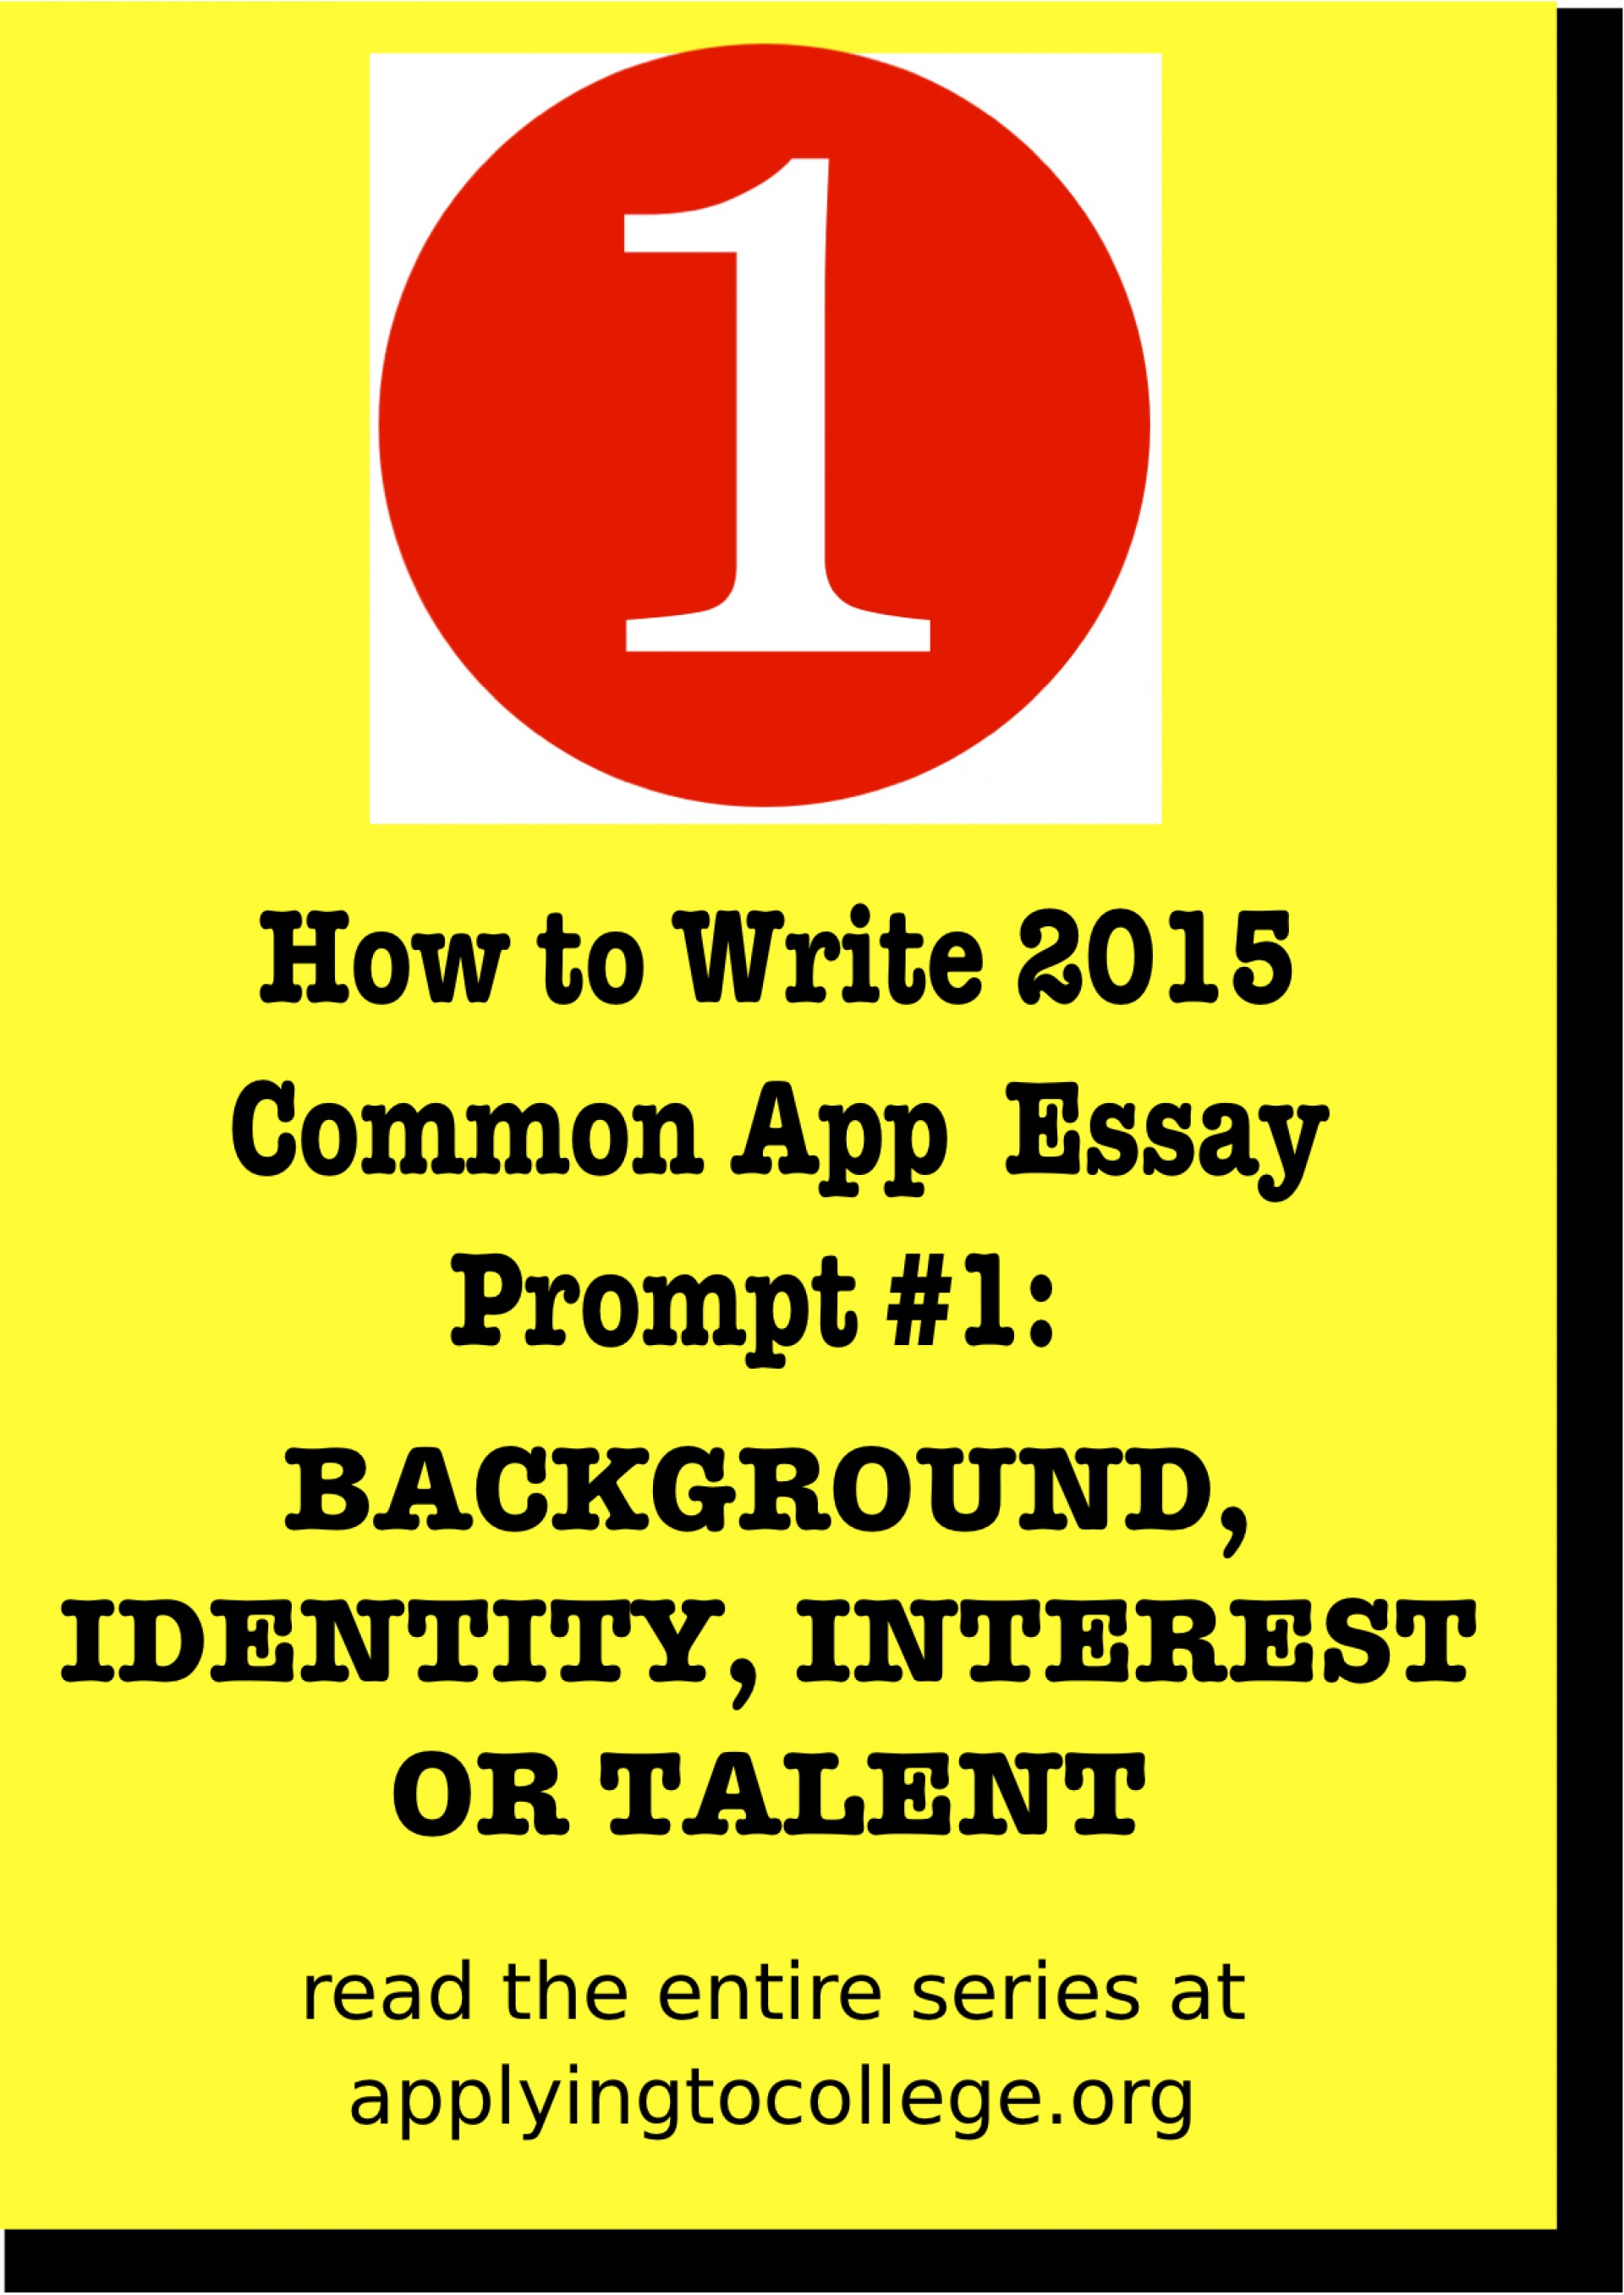 002 Essay Example Common Application Prompts How To Write App Surprising 2015 1920